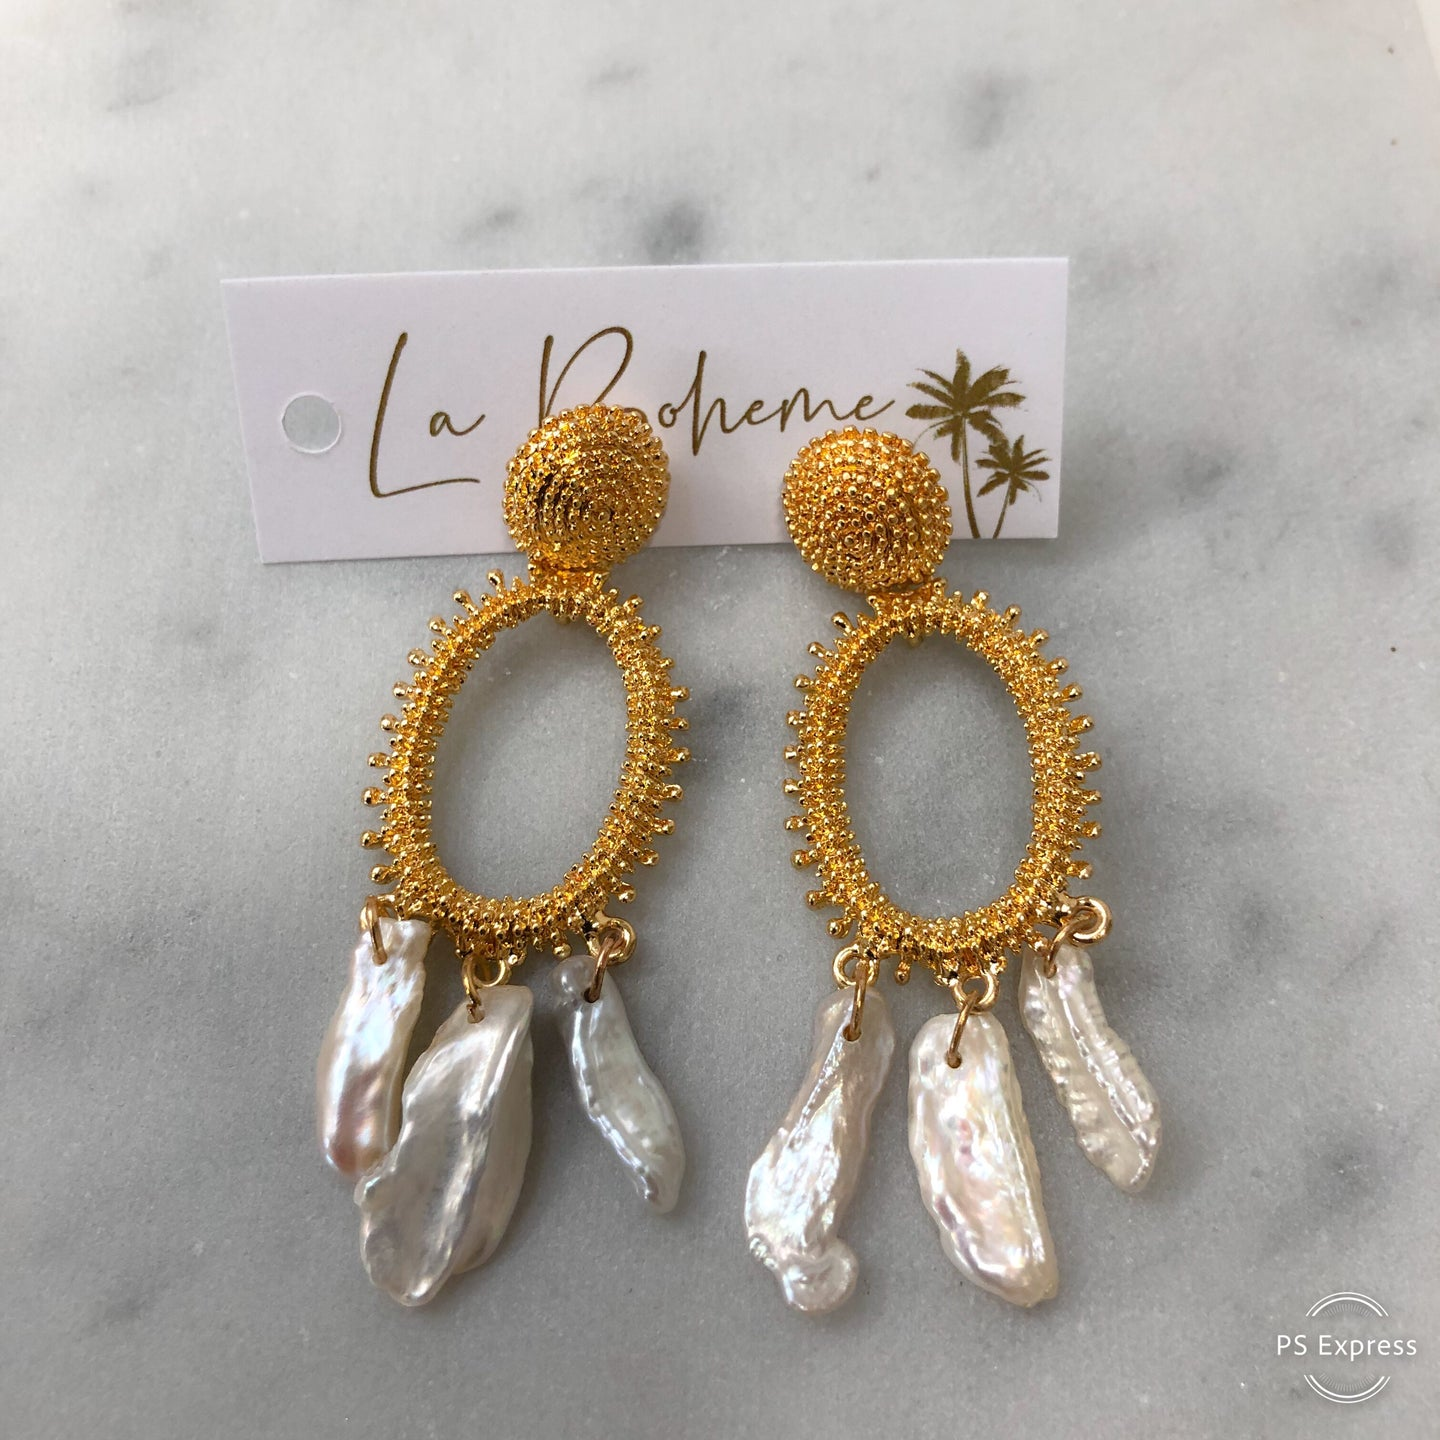 Adorne Anastasia Pearl & Gold Earrings